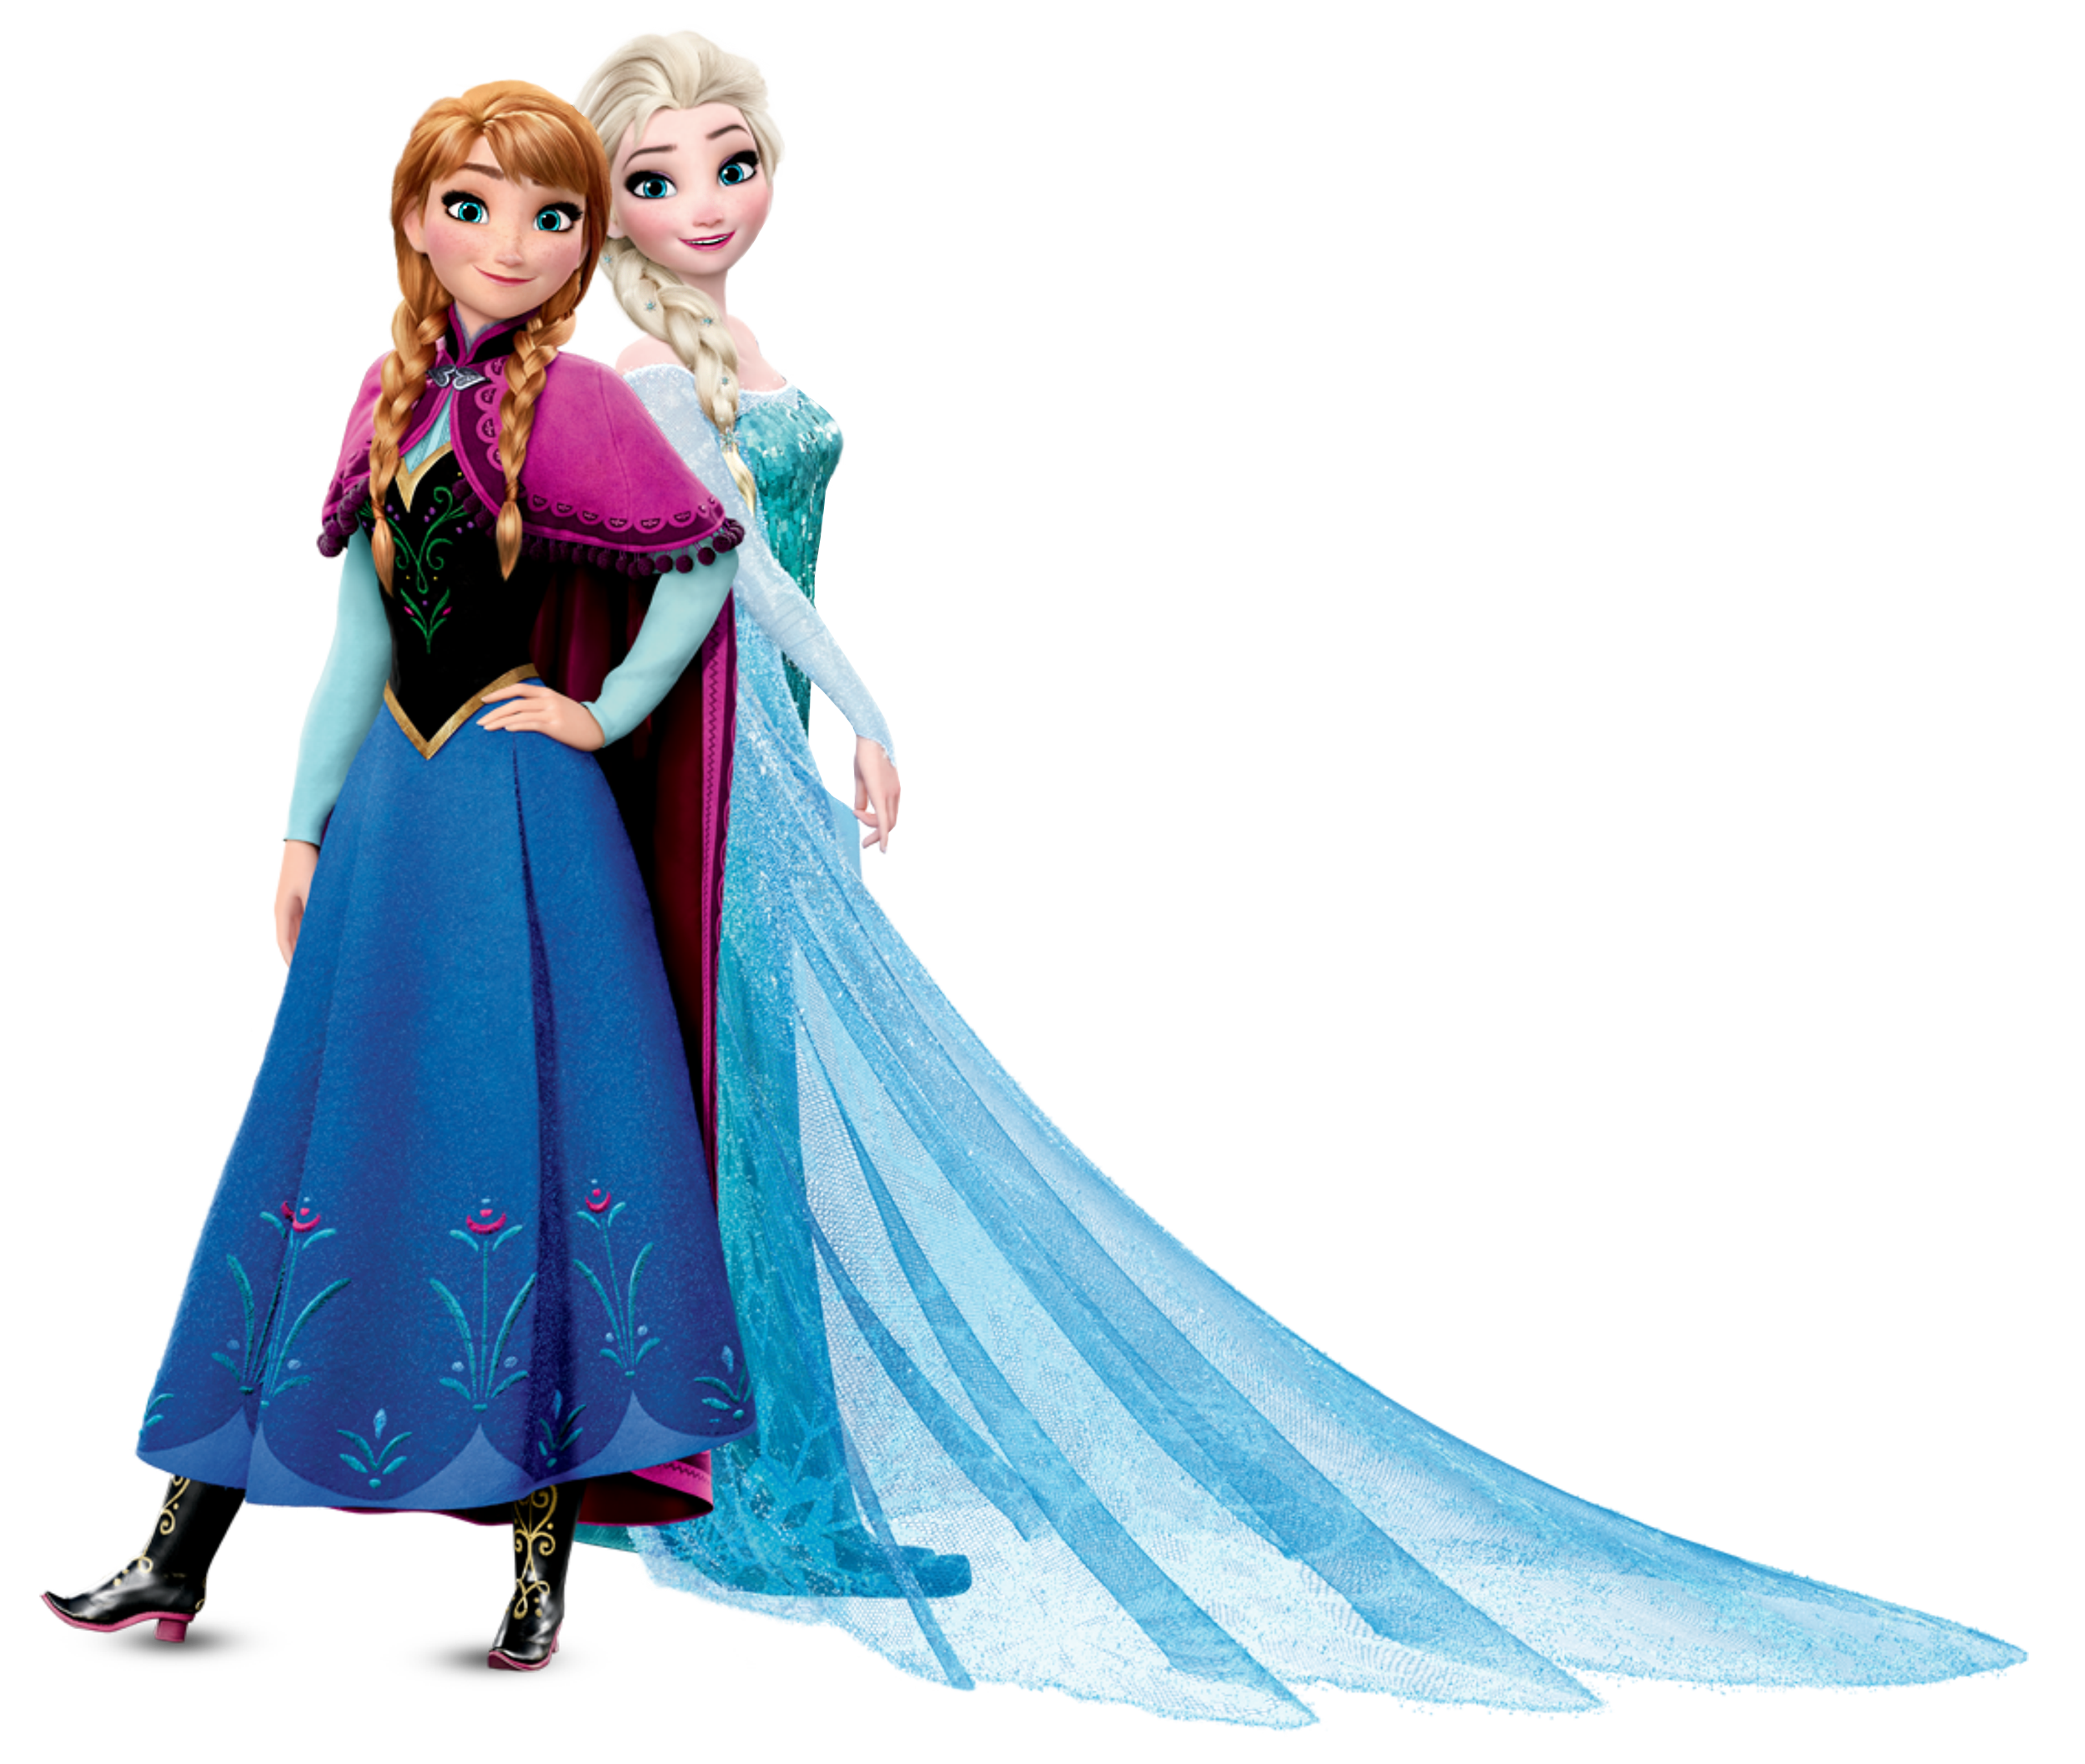 Frozen background png. Anna and elsa transparent